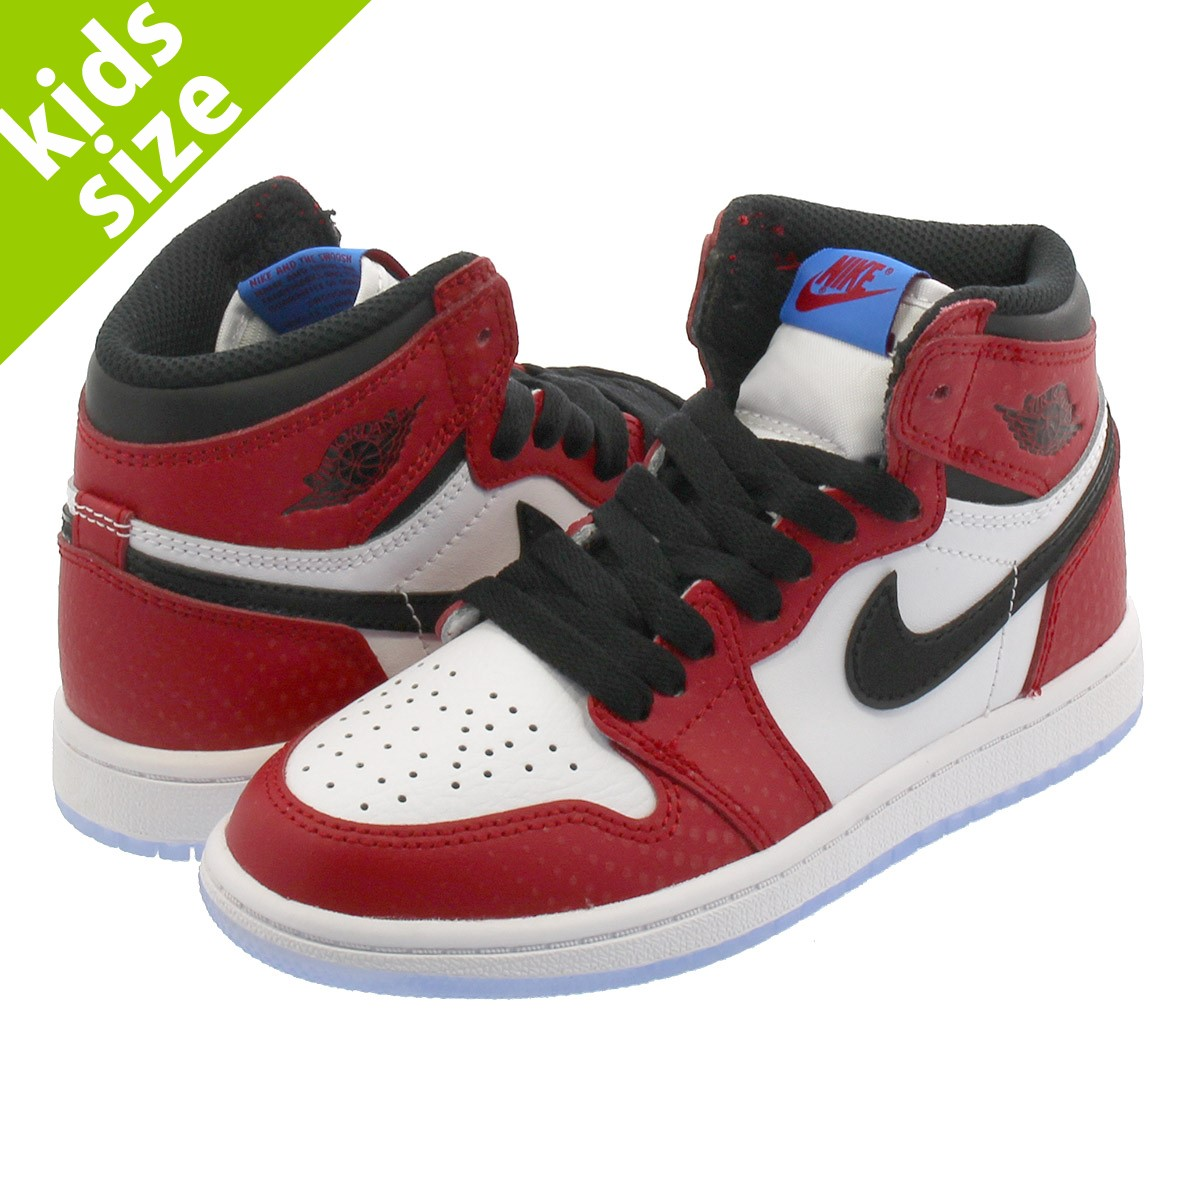 NIKE AIR JORDAN 1 RETRO HIGH OG BP Nike Air Jordan 1 nostalgic high OG BP  GYM RED/WHITE/PHOTO BLUE/BLACK